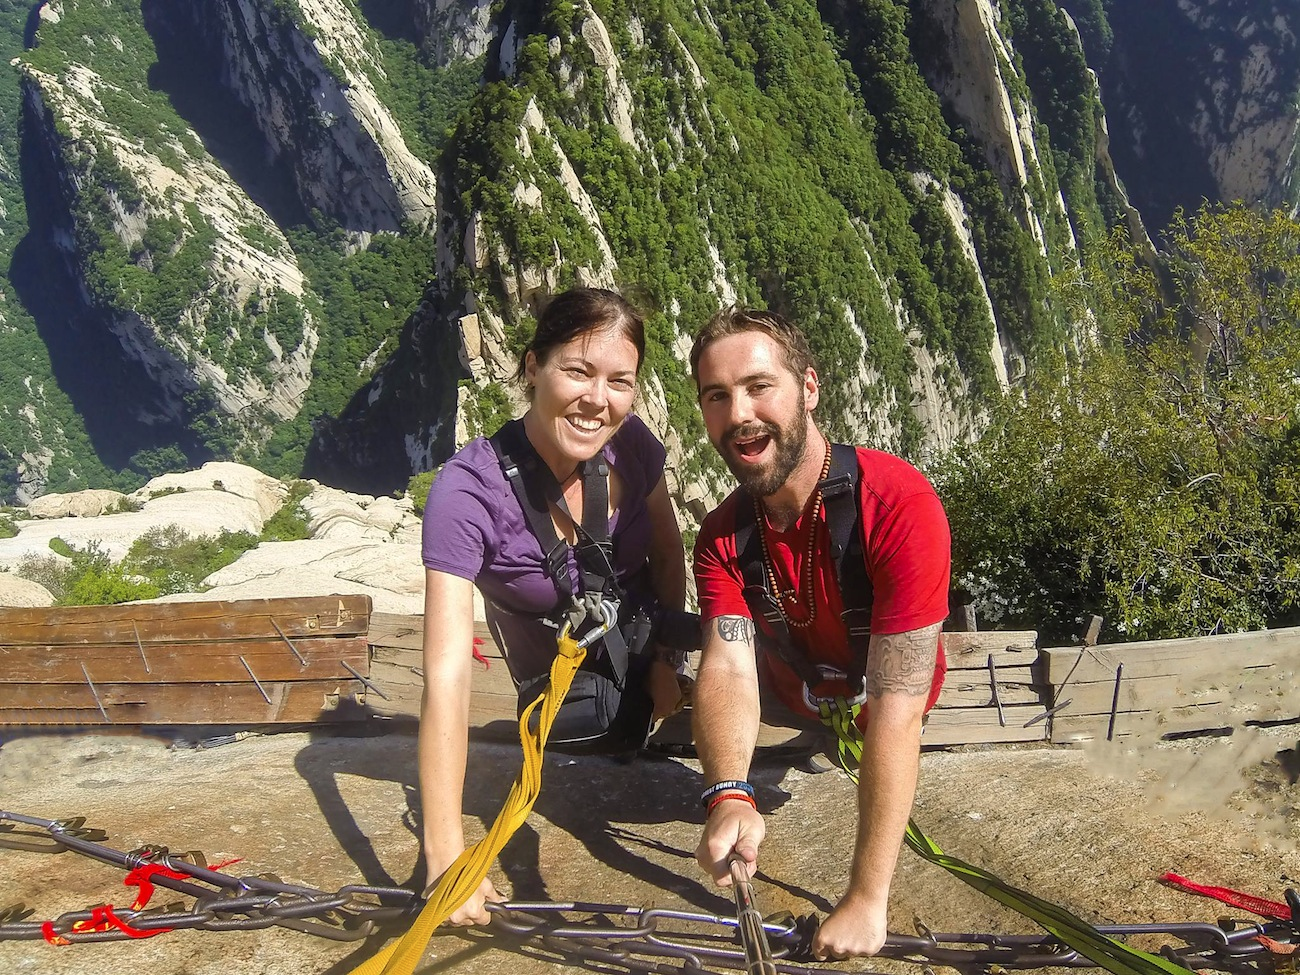 Here's the budget of a couple who traveled for an entire year on less than $30,000